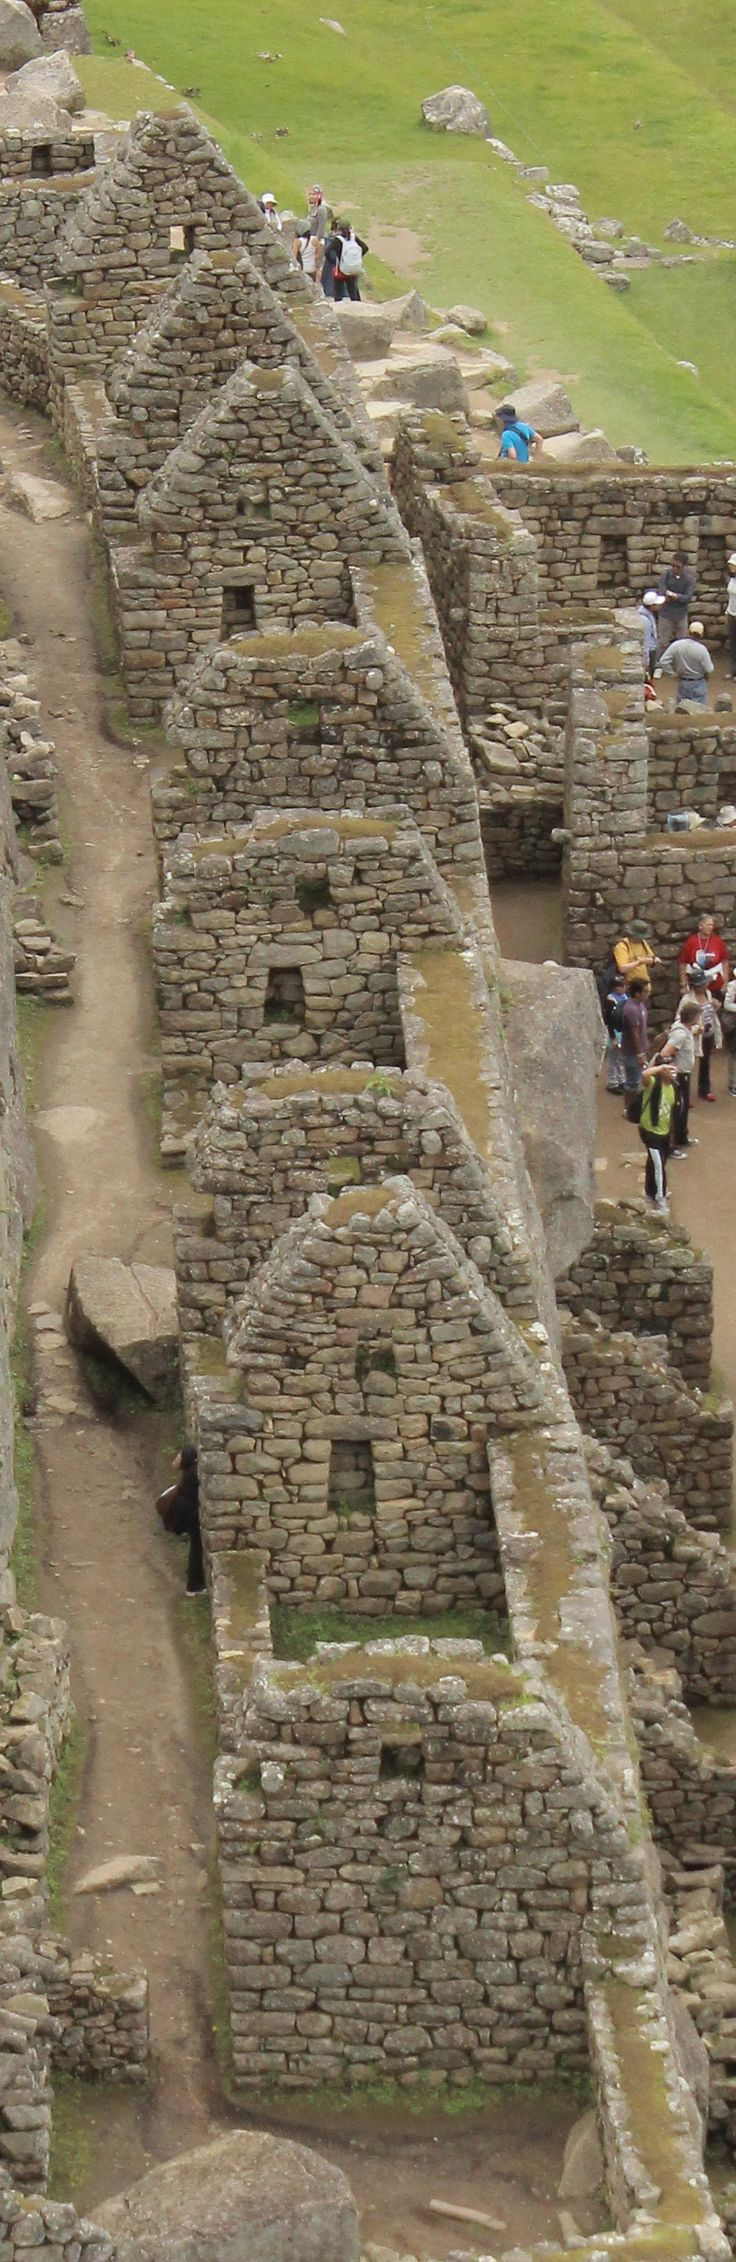 Machu Picchu, PERU- wonder of the ancient world! Travel to South America and know more! only with www.Triphobo.com